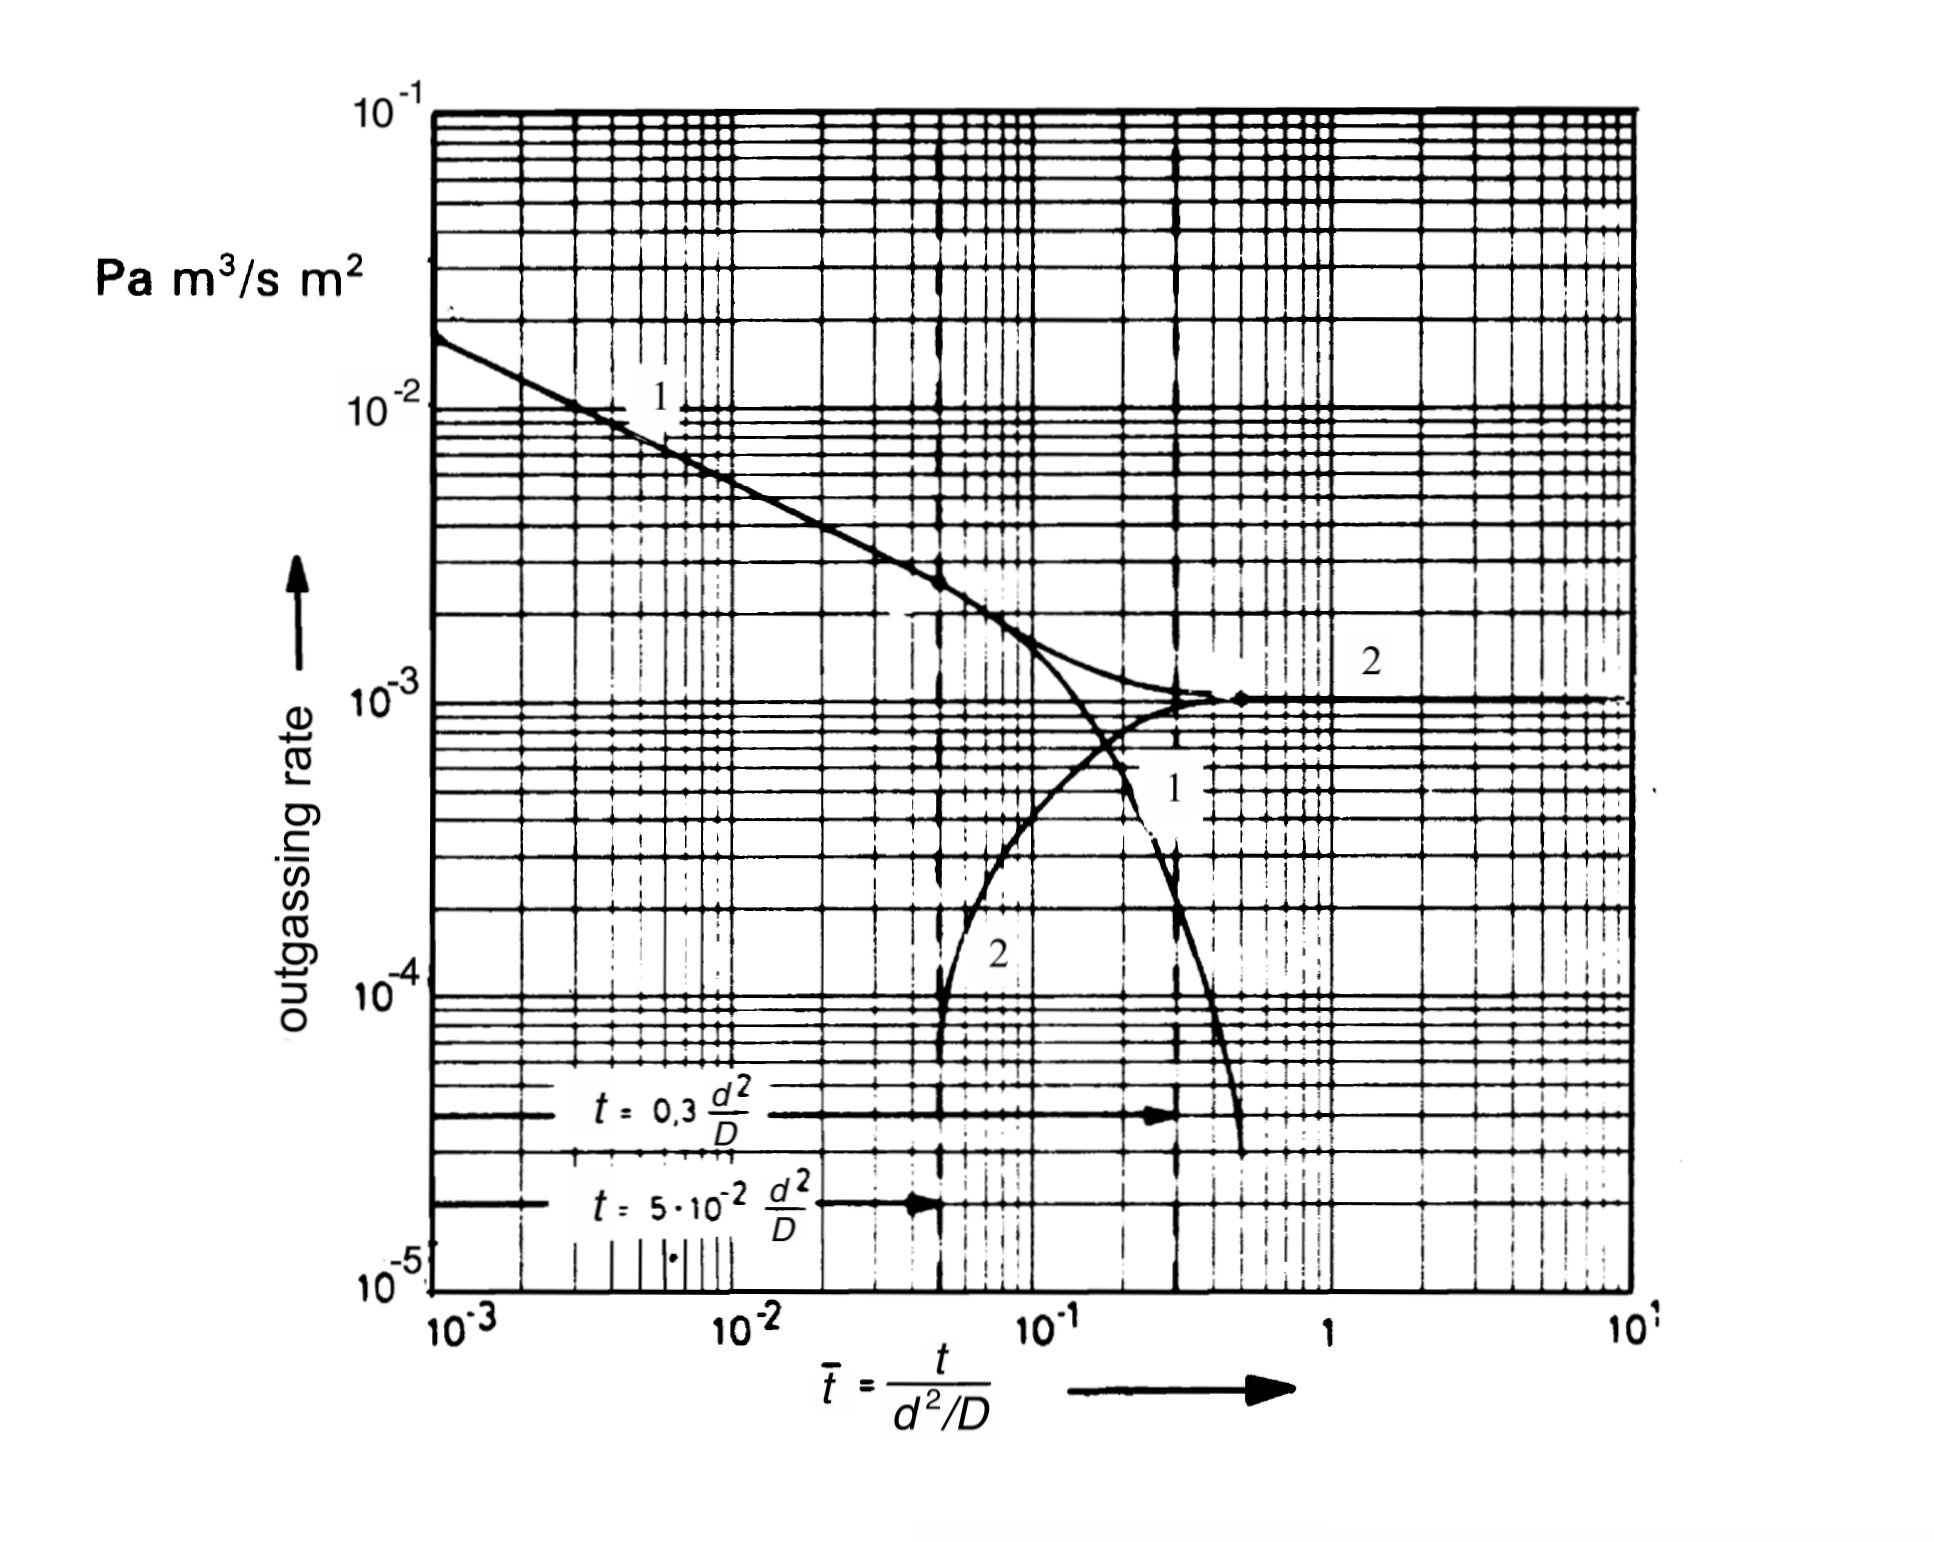 Gas-solid interaction - Desorption and permeation through a vacuum wall as a function of time